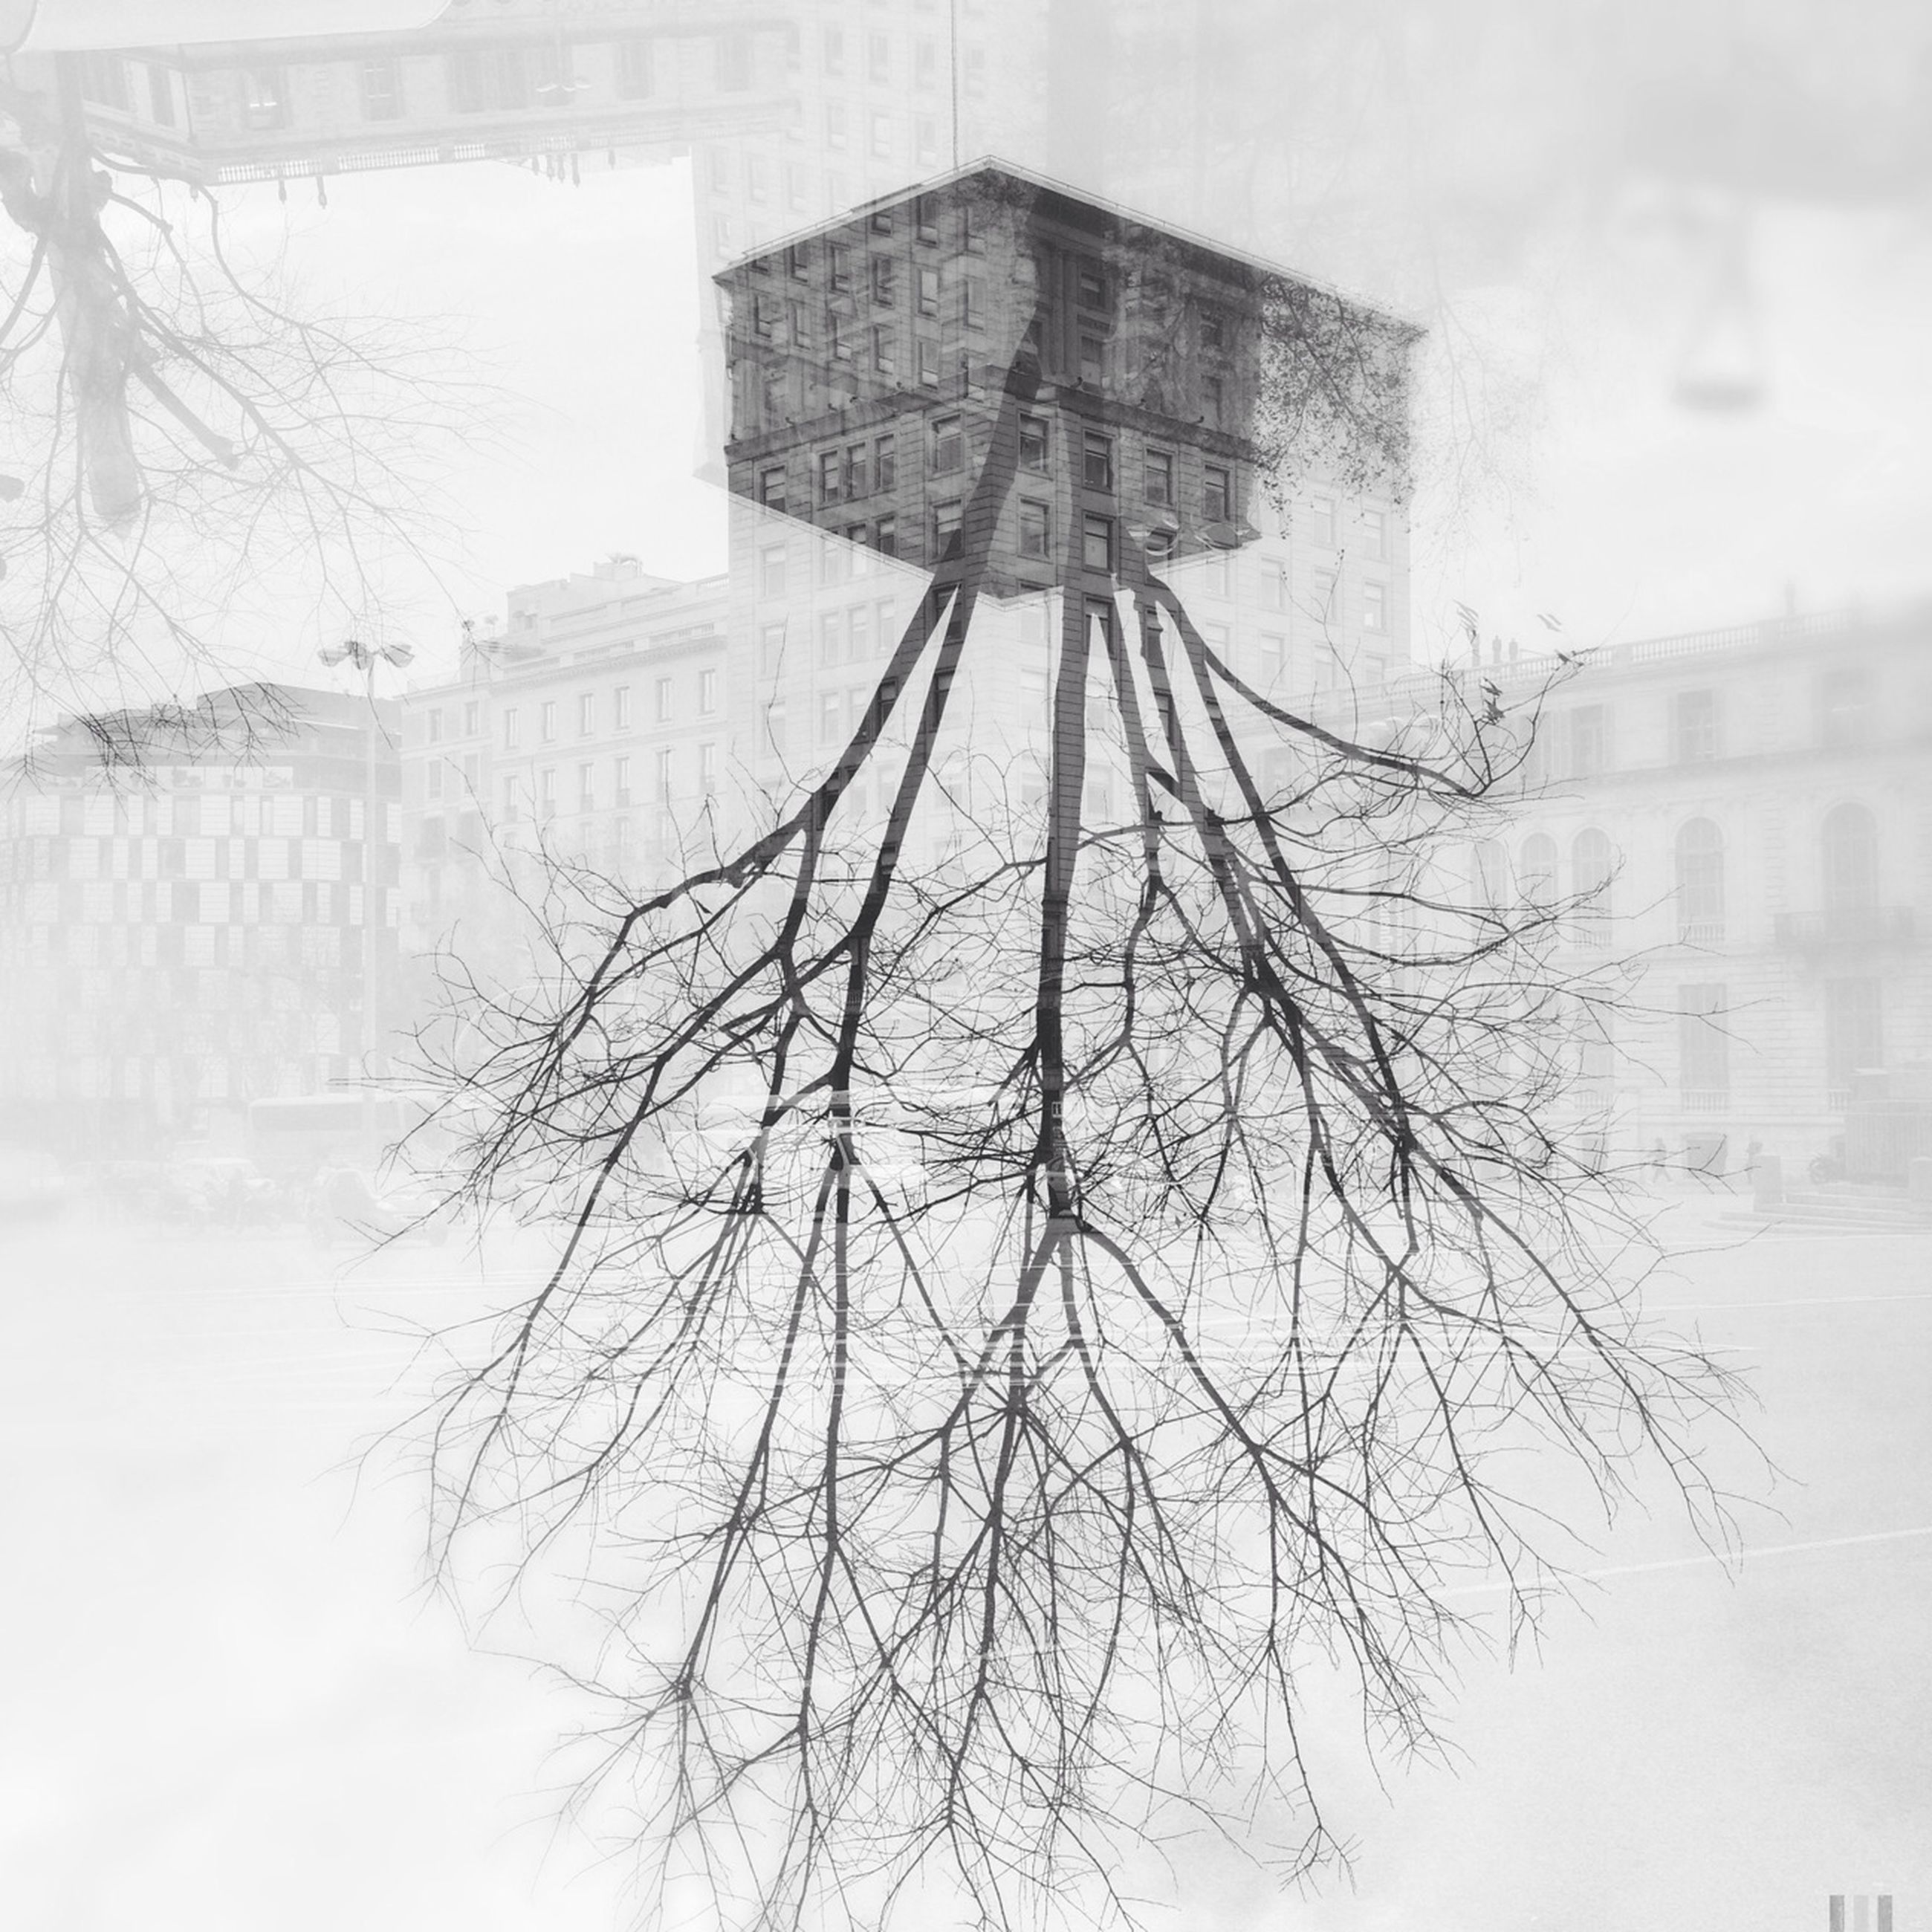 tree, water, fog, bare tree, lake, weather, winter, season, reflection, cold temperature, snow, day, tranquility, nature, built structure, foggy, architecture, building exterior, outdoors